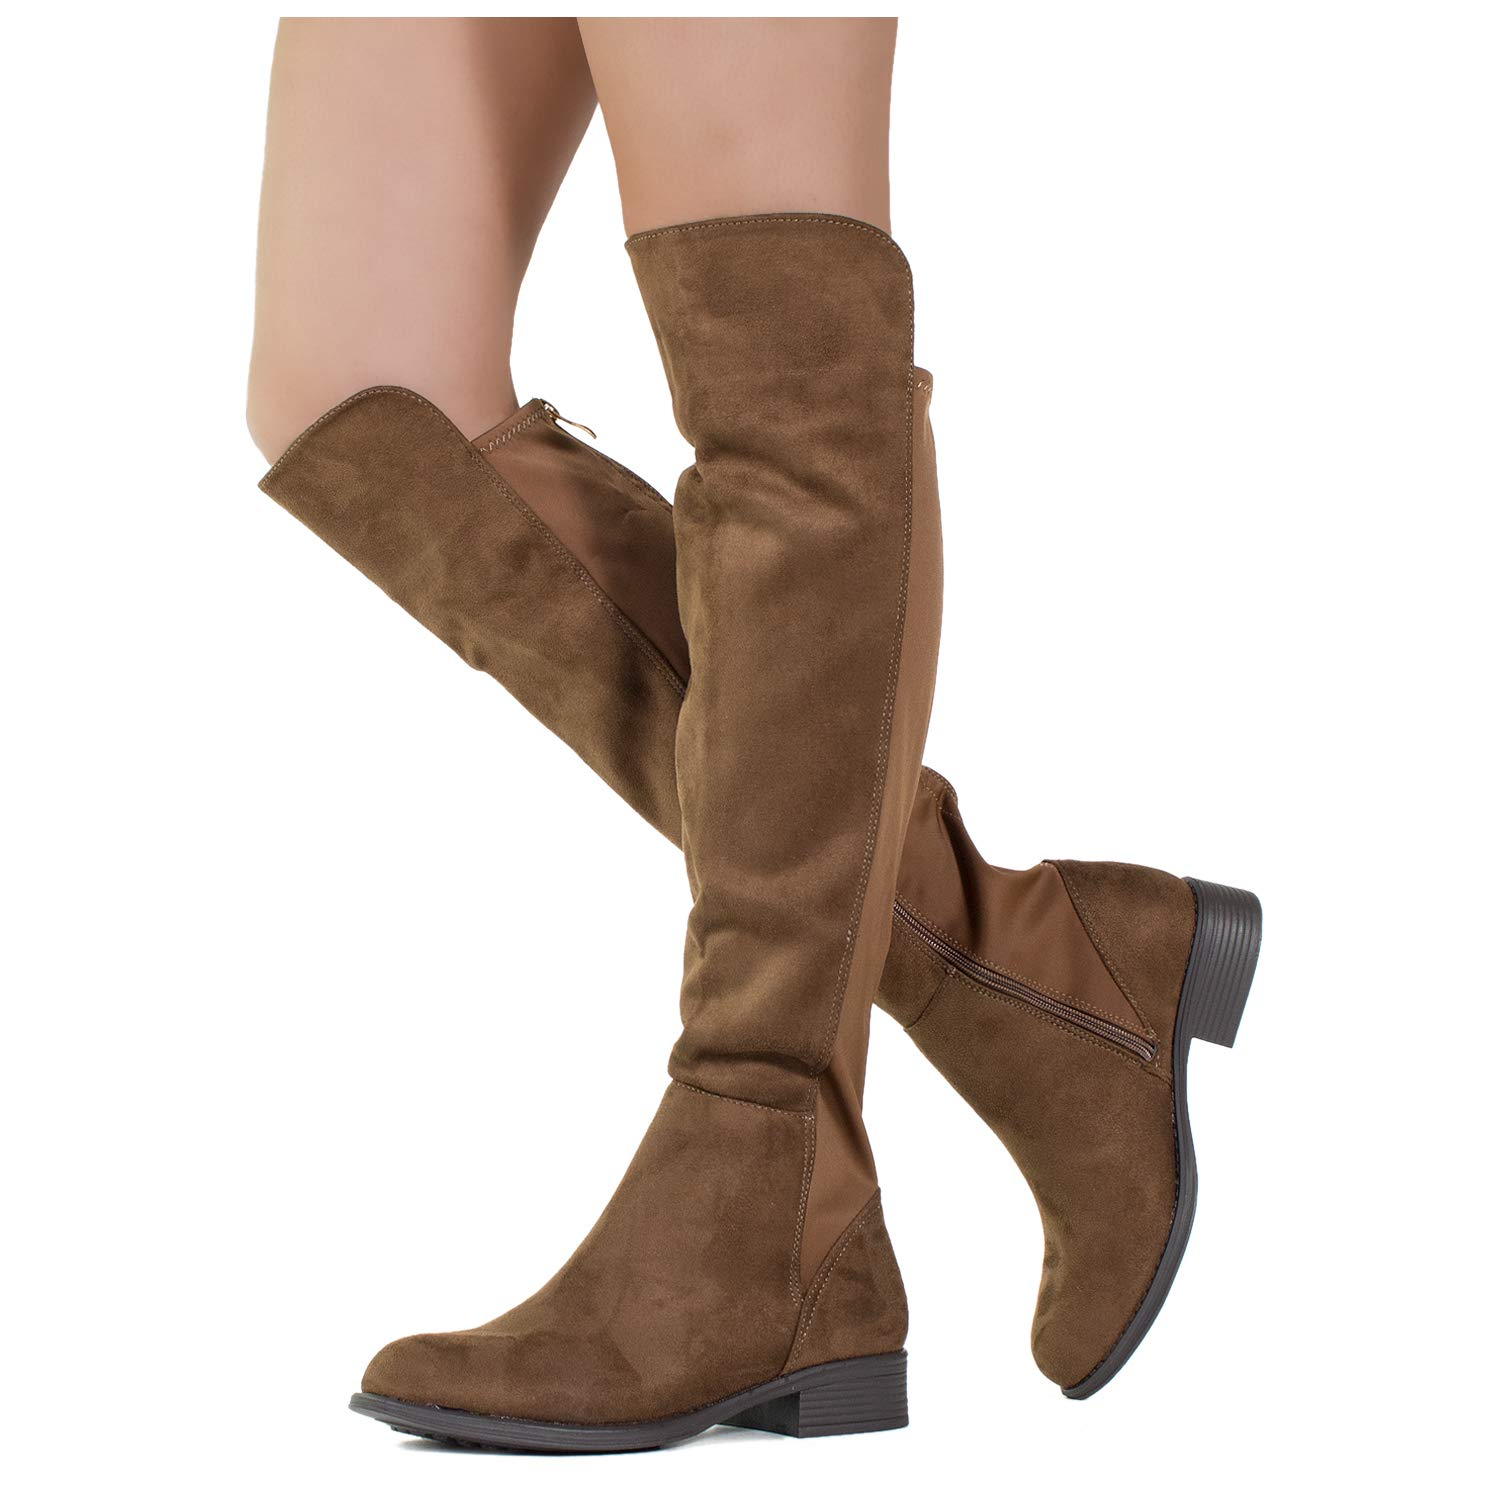 Brown Suede ROF Women's Fashion Comfy Vegan Suede Block Heel Side Zipper Thigh High Over The Knee Boots